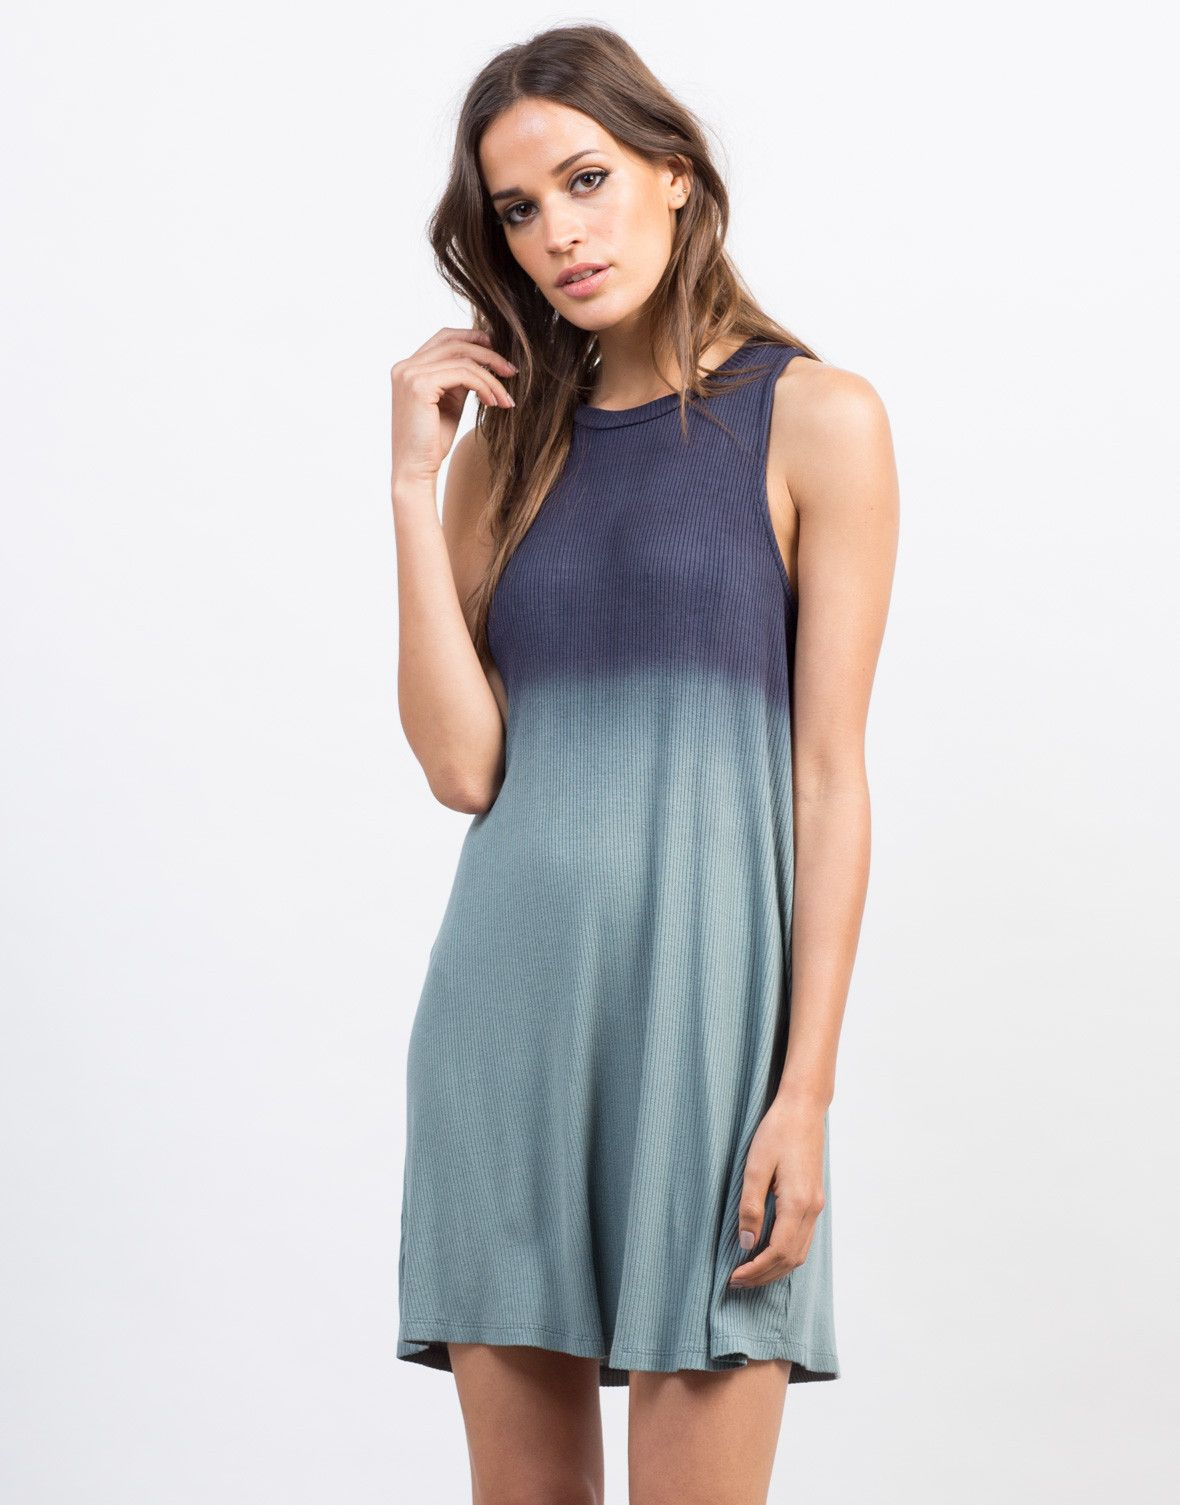 Ombre Flowy Tank Dress | Tank dress, Fedoras and Ombre